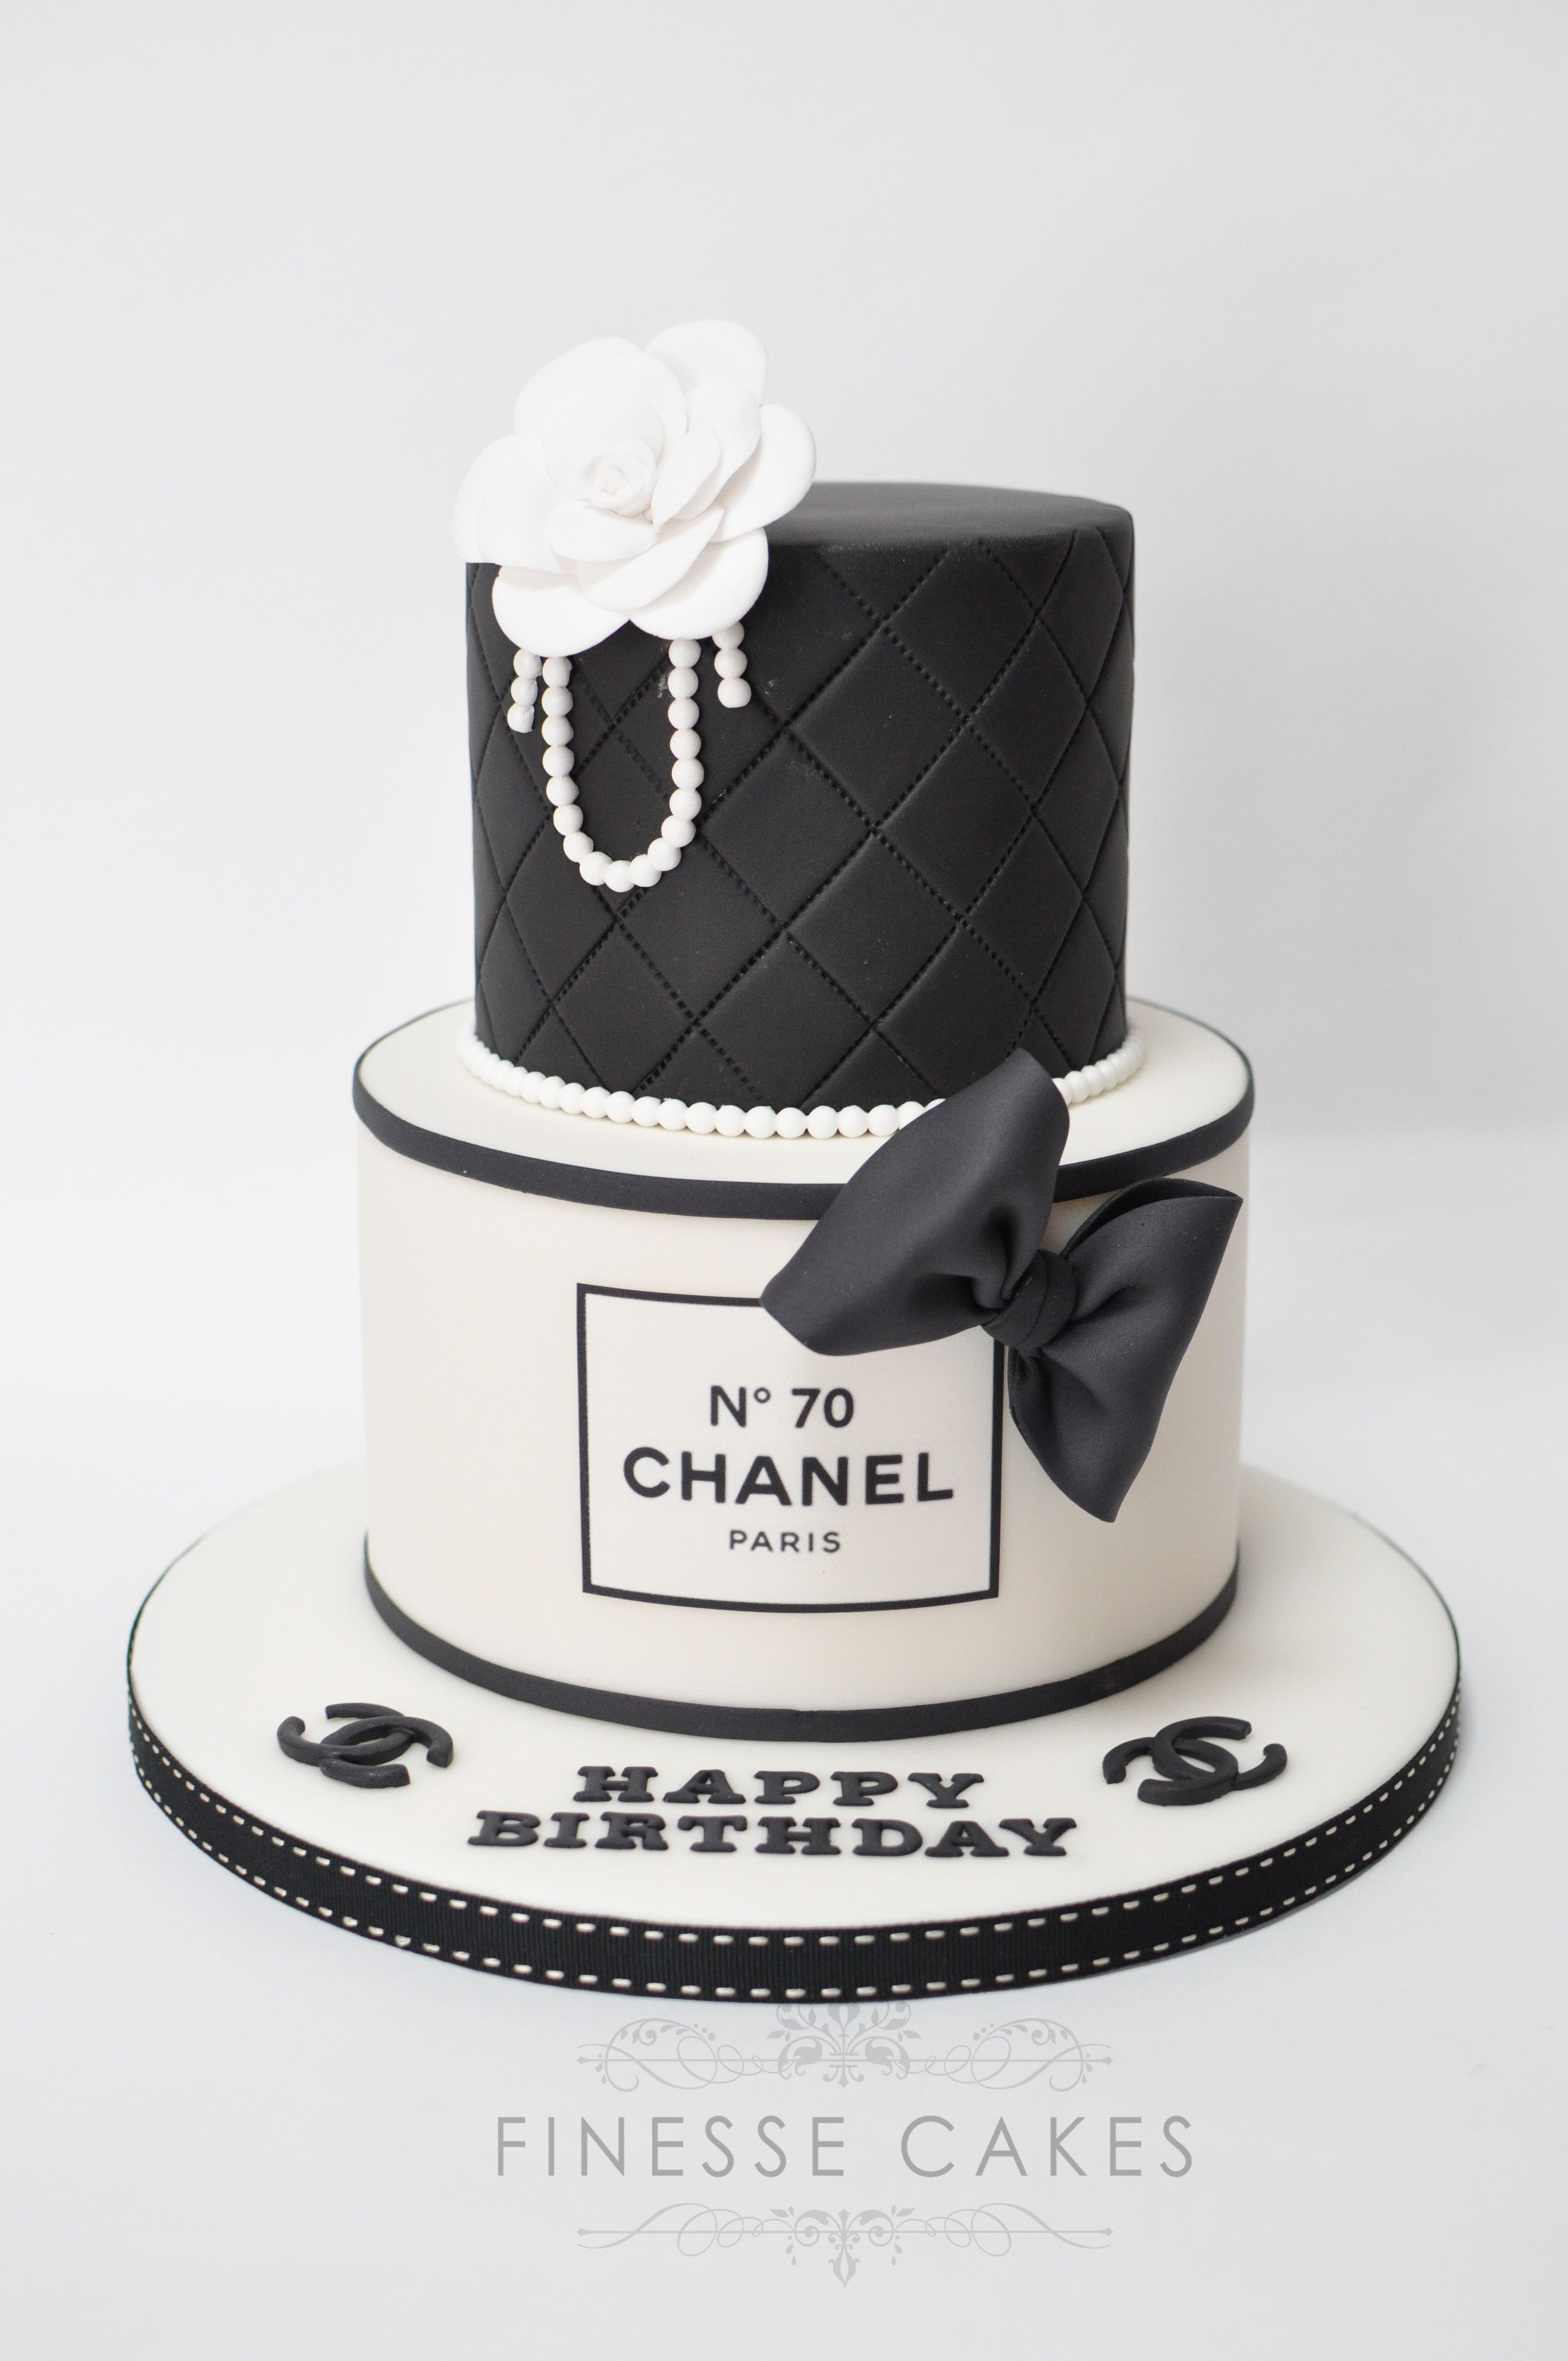 Chanel Girly Cakes Amp Party Chanel Birthday Cake Cake